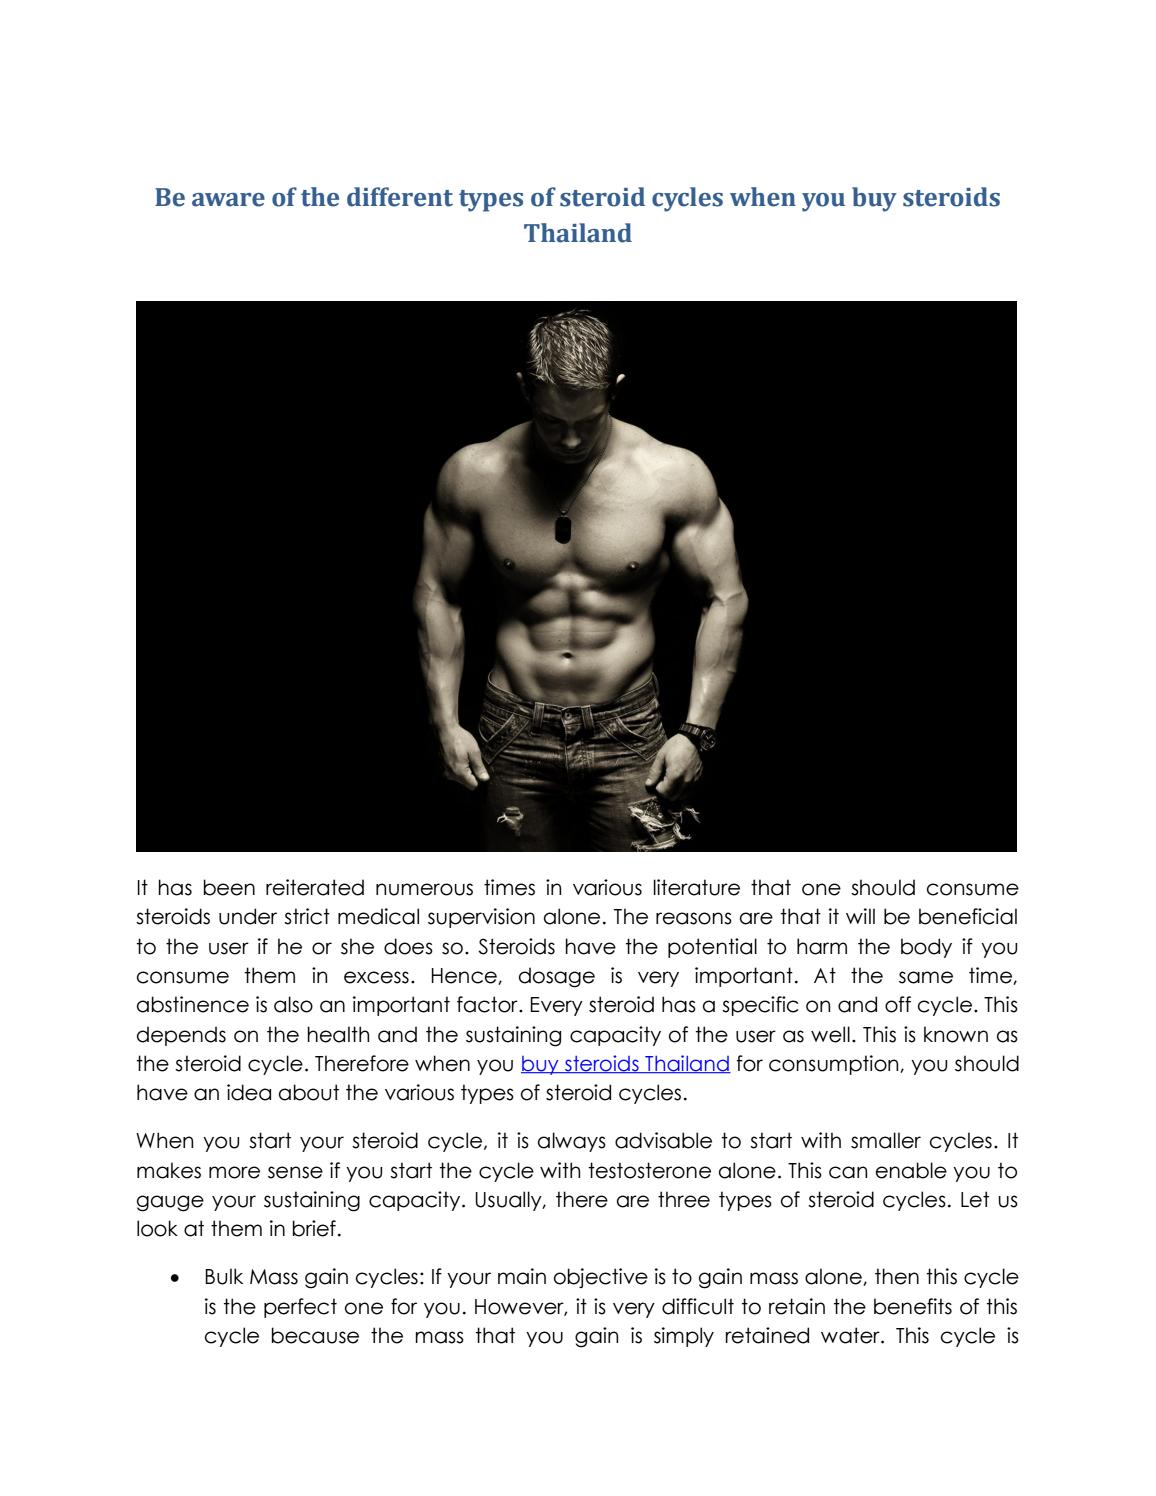 Be aware of the different types of steroid cycles when you buy